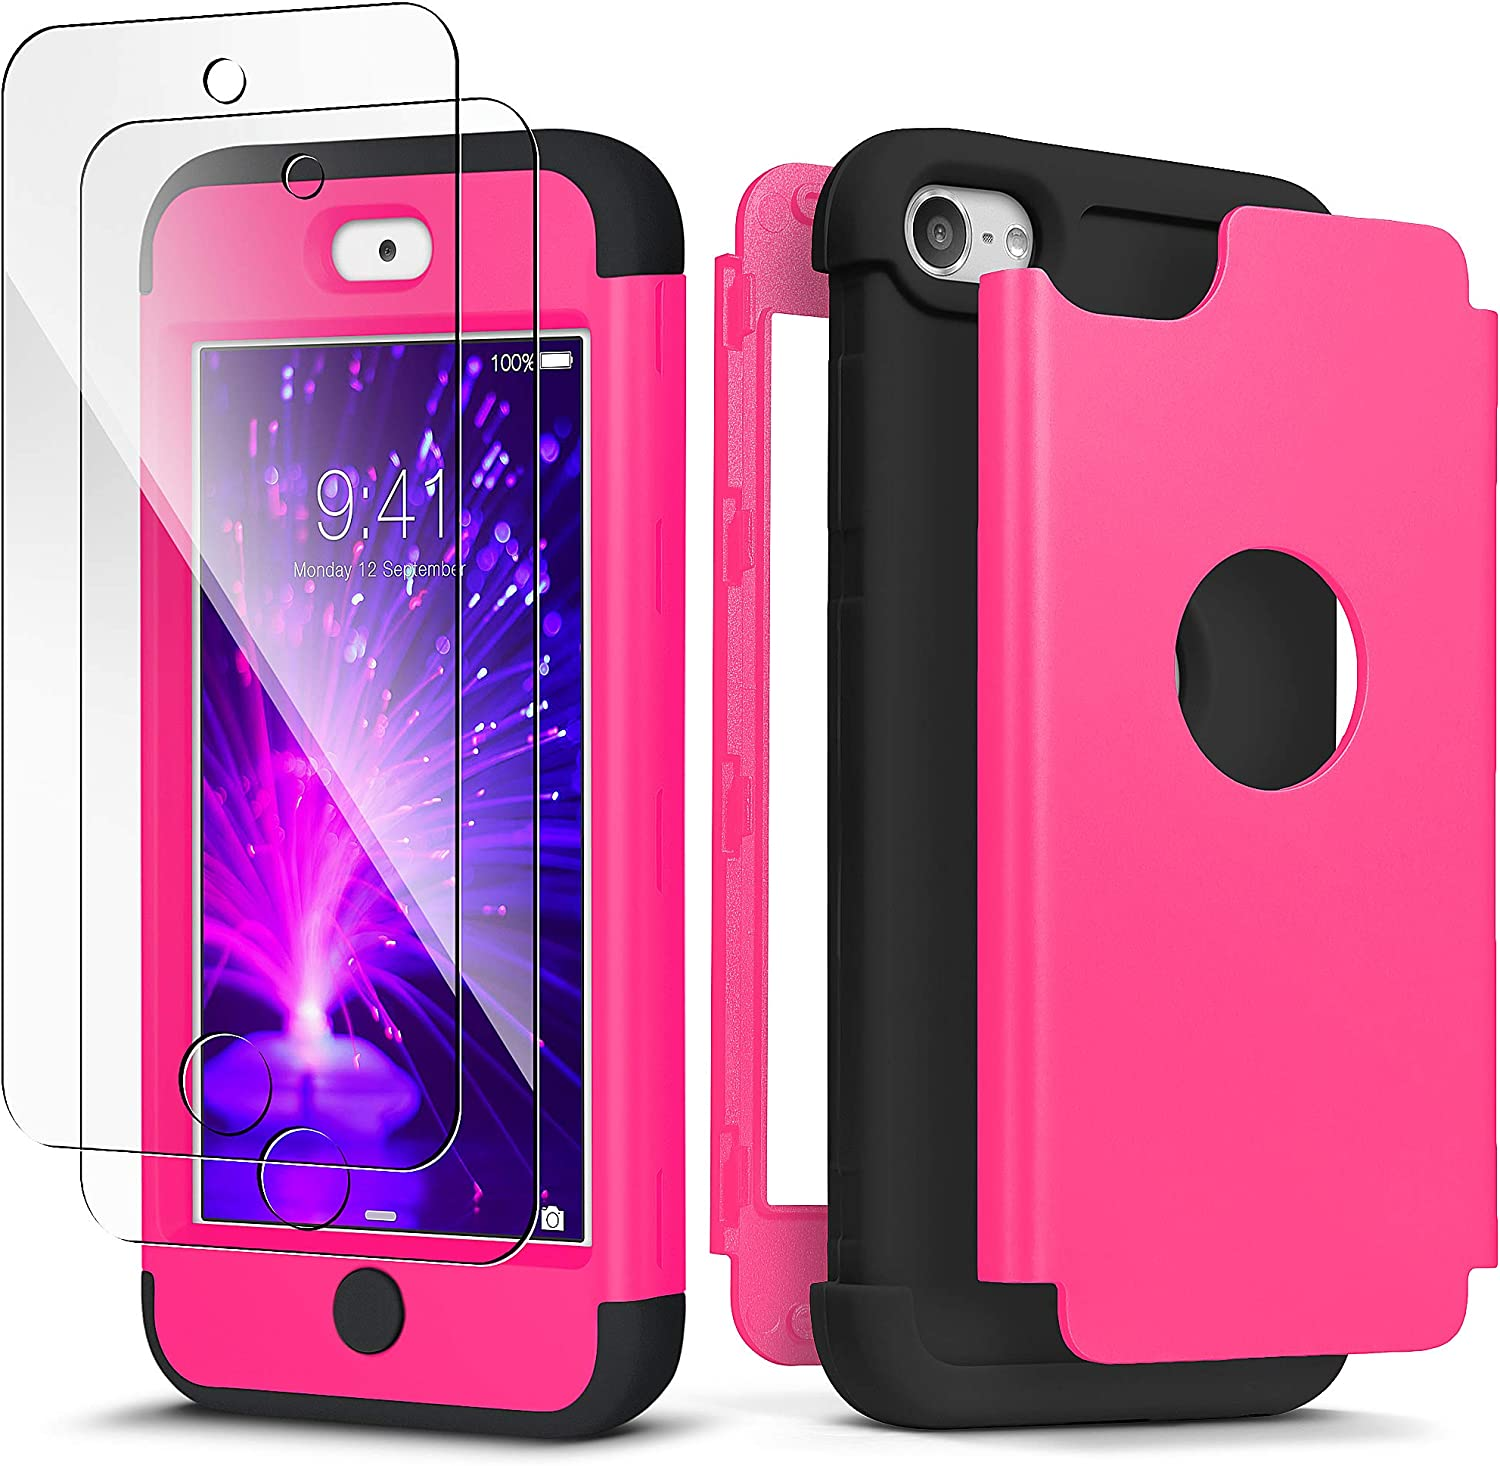 iPod Touch 7th Generation Case with 2 Screen Protector, IDweel Heavy Duty High Impact Armor Shockproof Case Cover Protective Case for Apple iPod Touch 5/6/7th Generation, Rose+Black